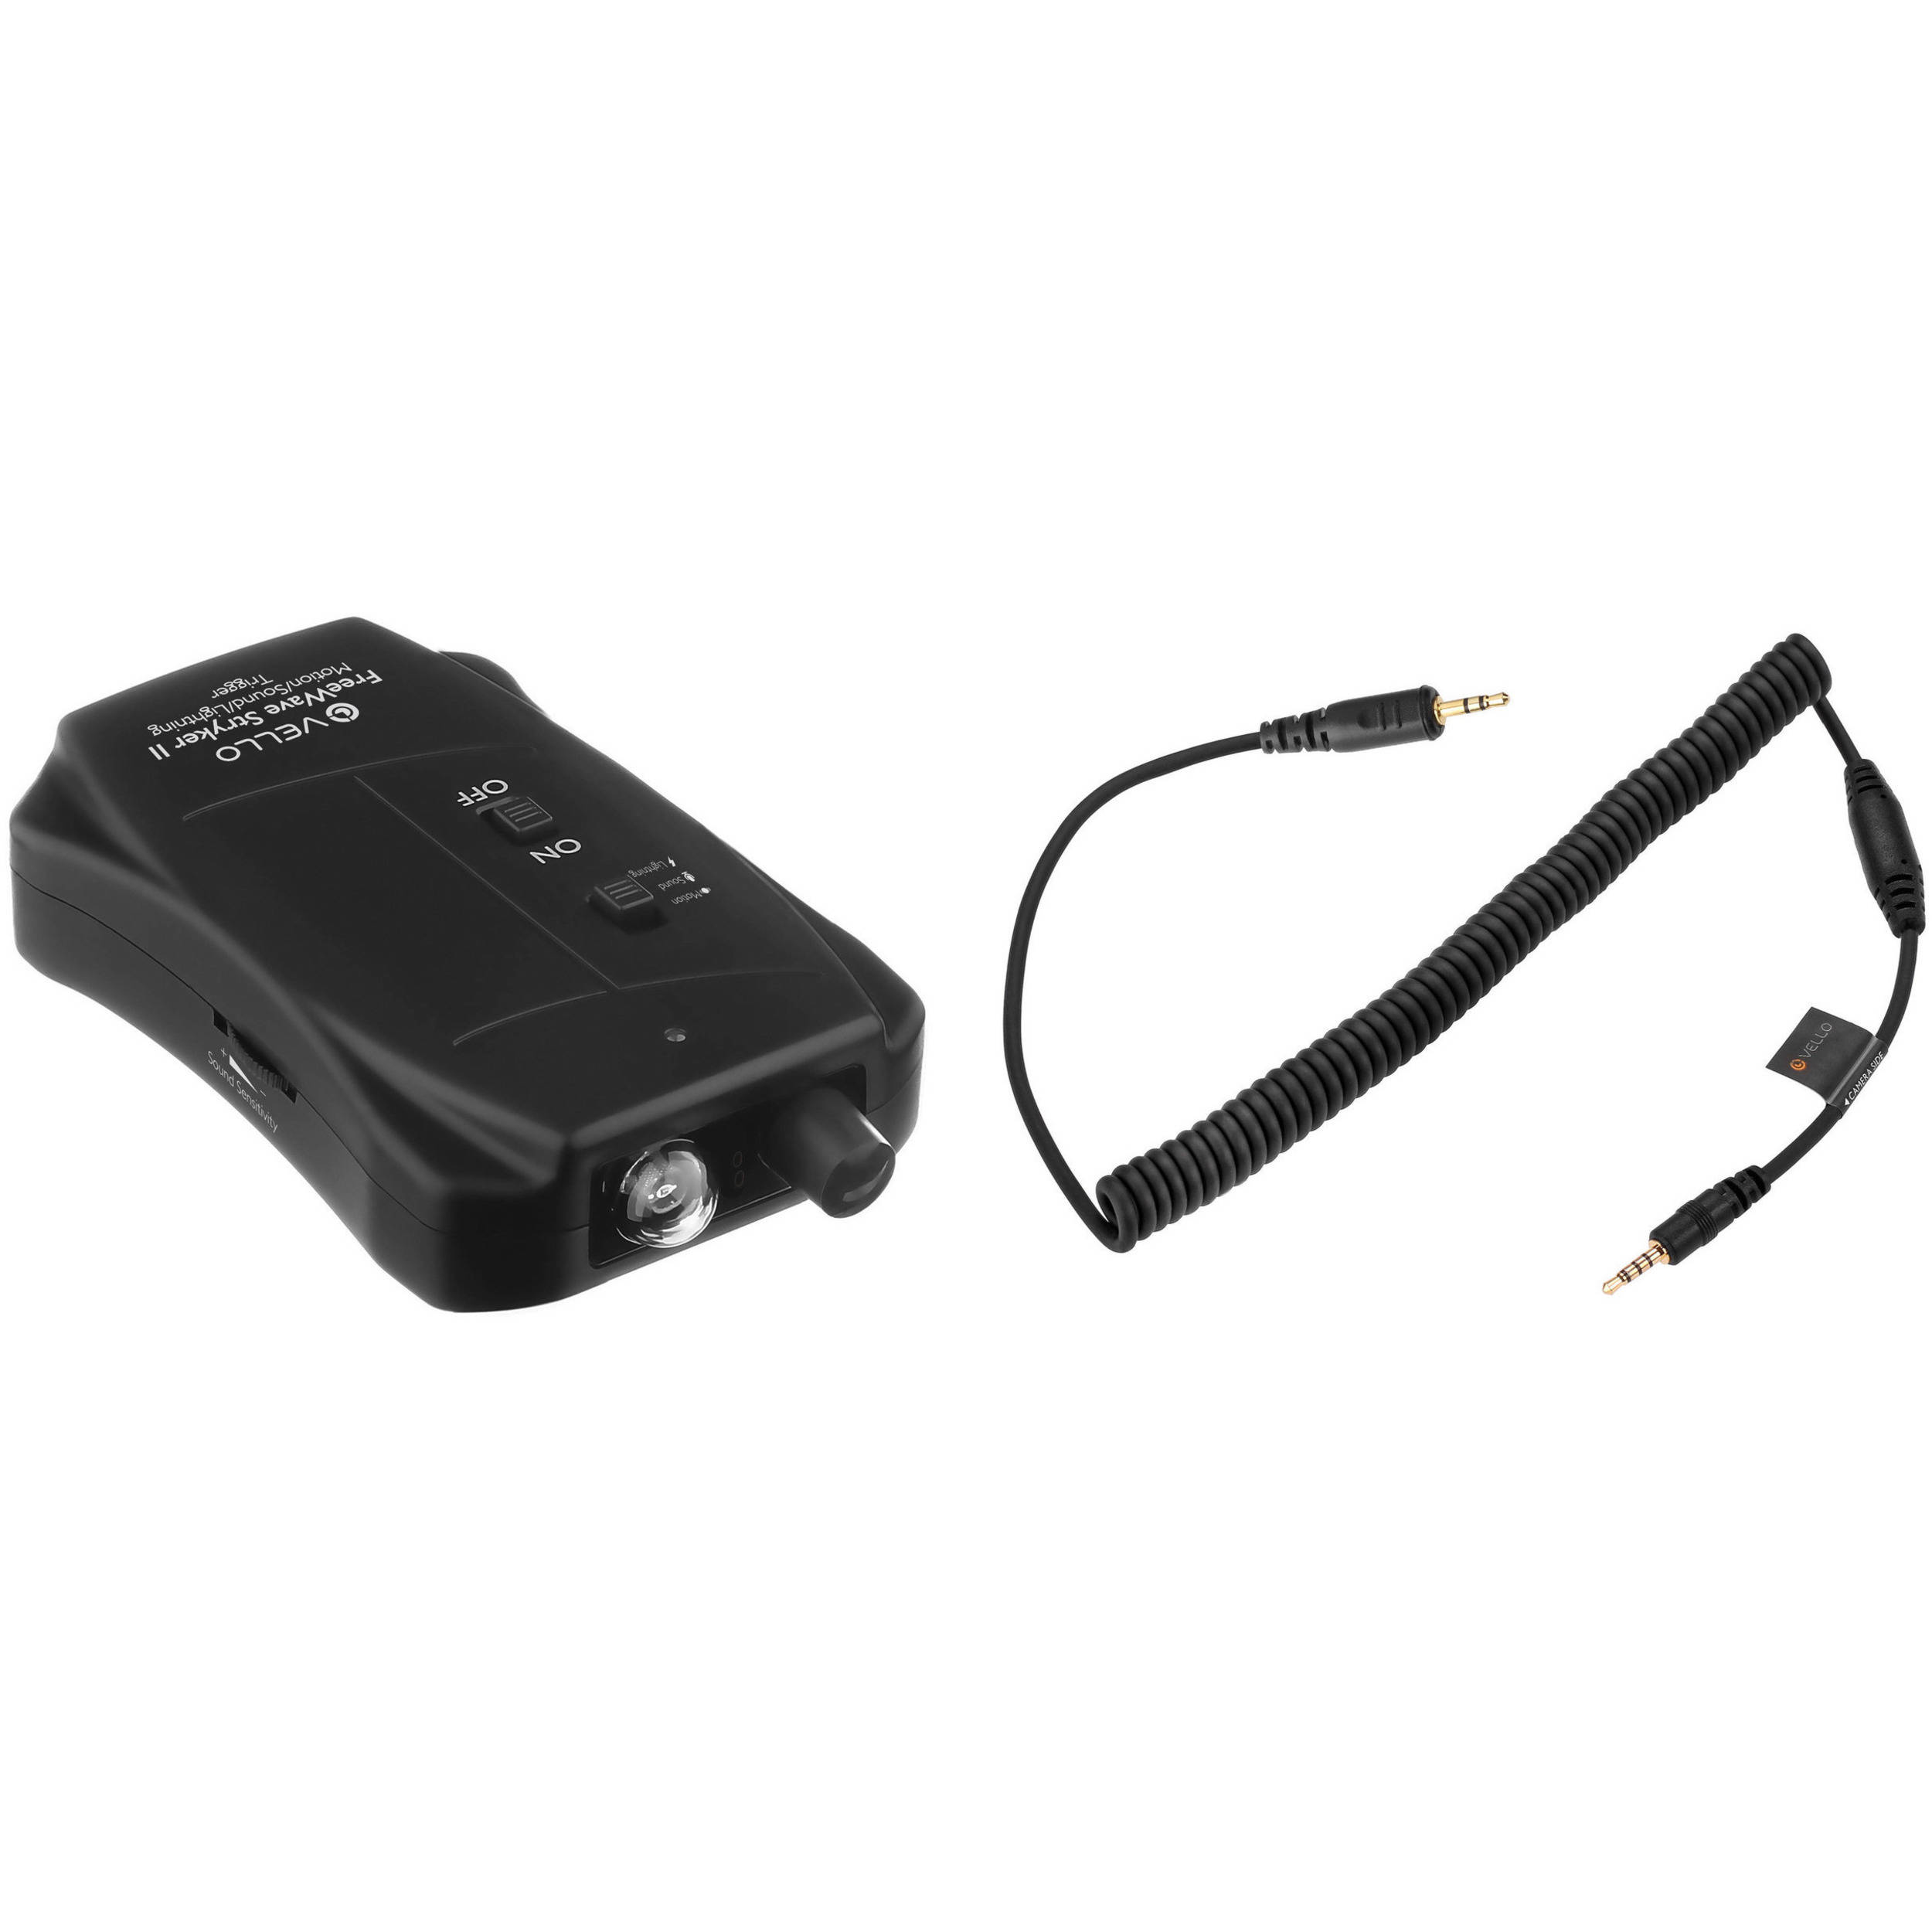 Audio Recorder High Safety Nice Ta3 F To Xlr3 F Input Pair Cable Sound Devices Zaxcom tiny Xlr